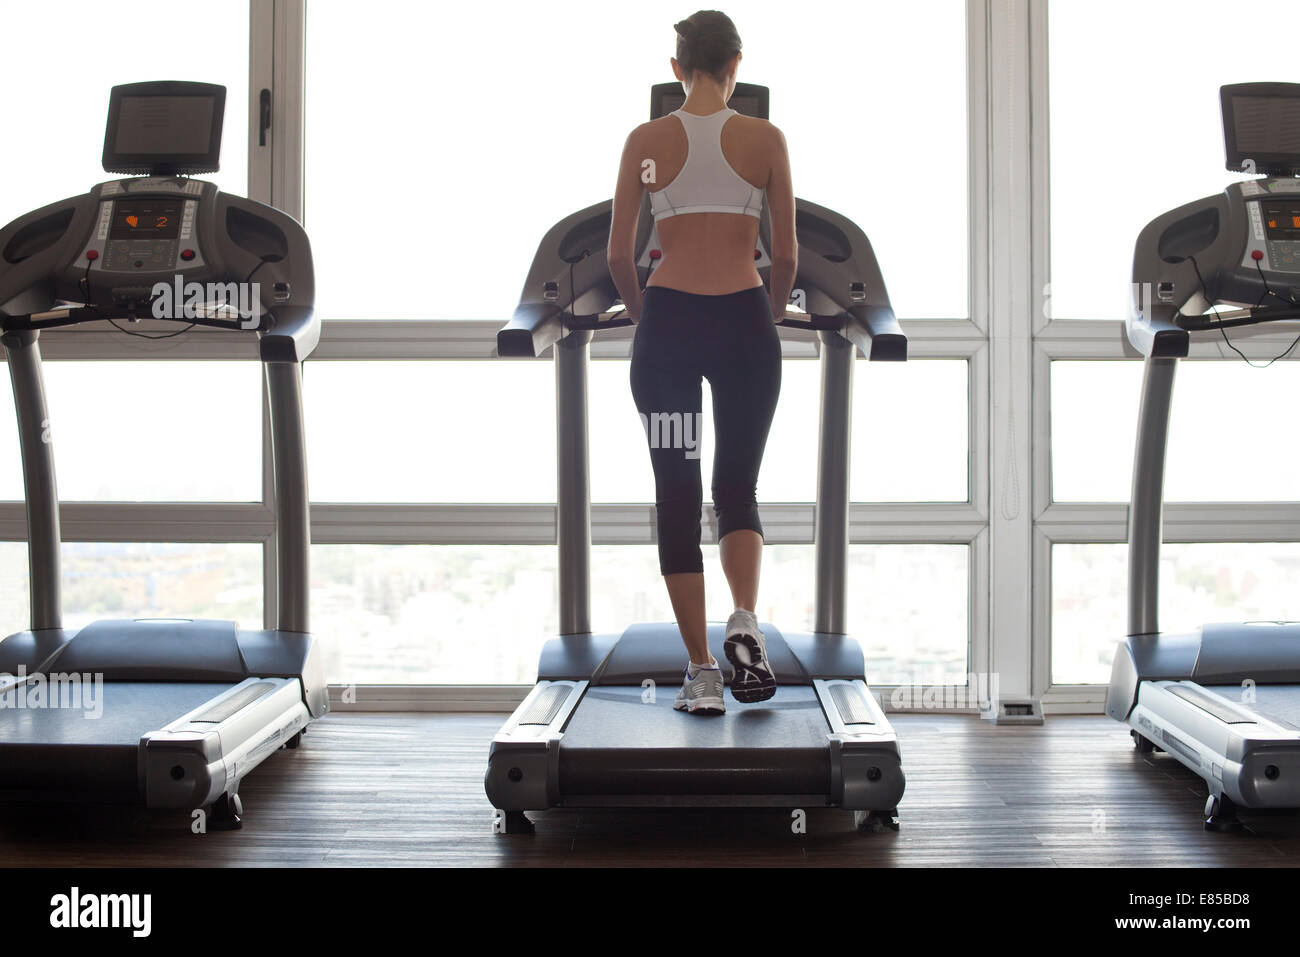 Femme en forme at gym Photo Stock